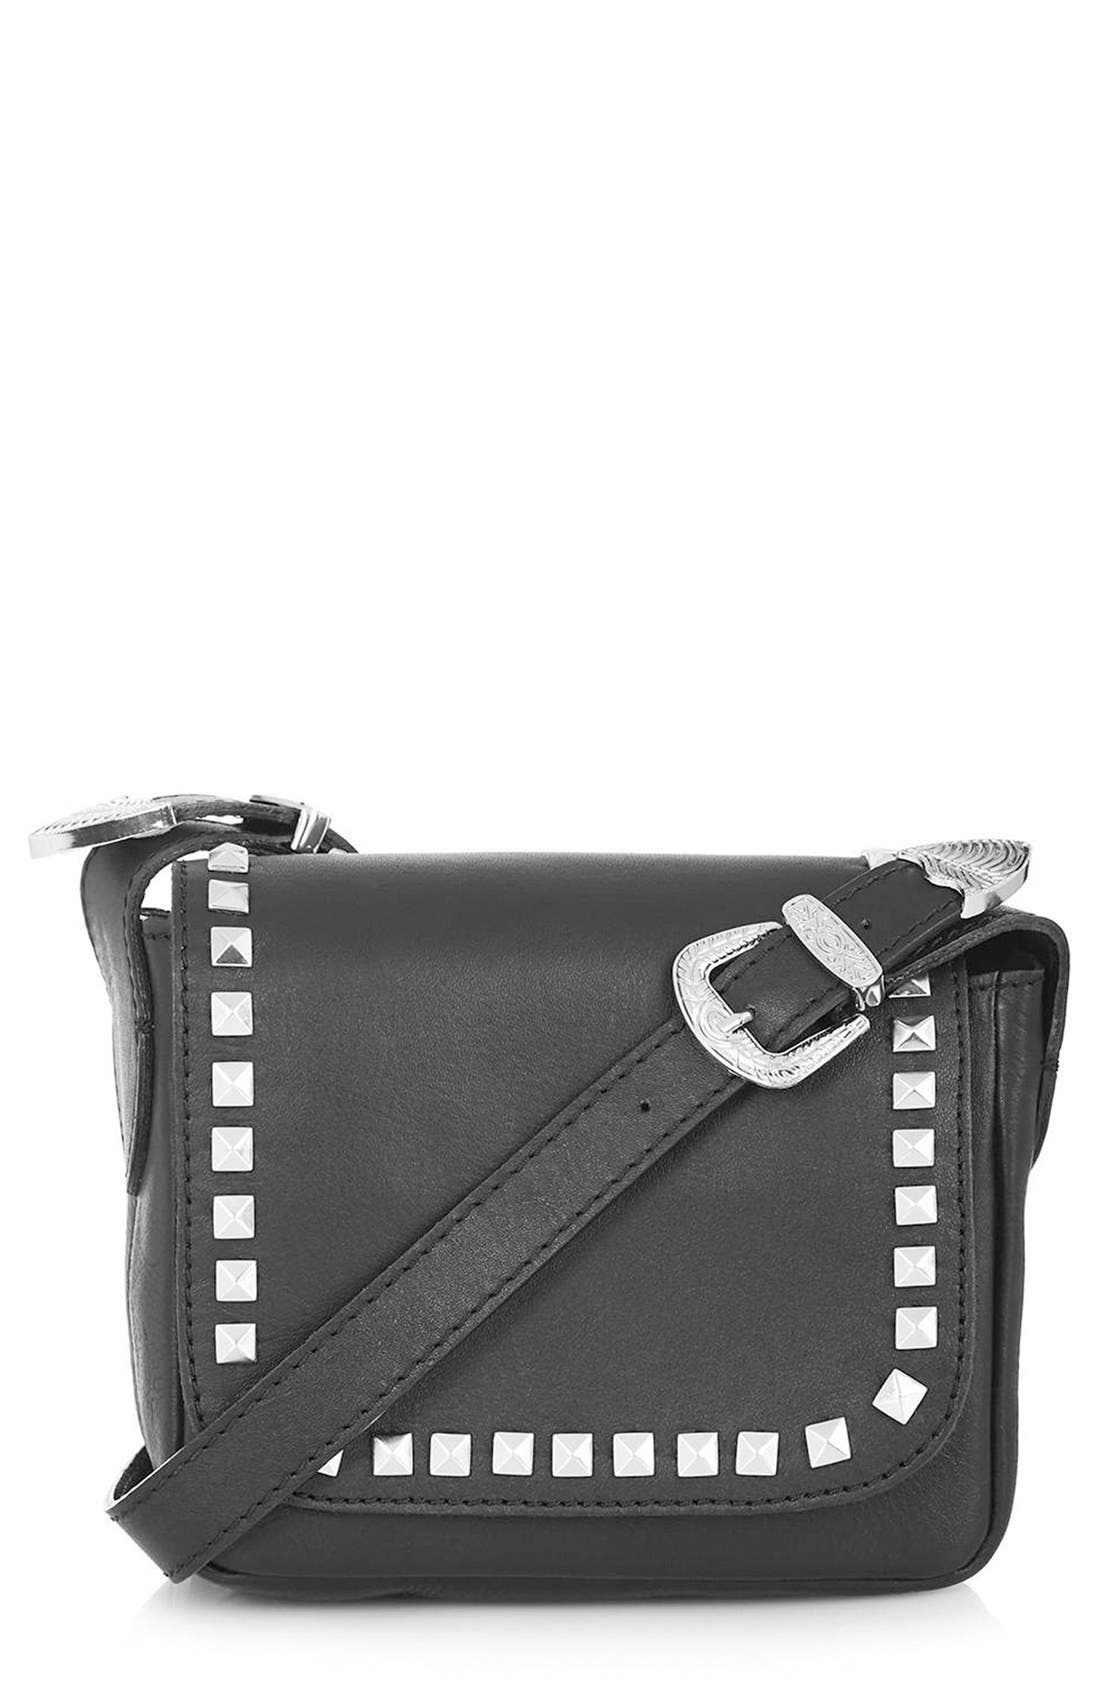 Alternate Image 1 Selected - Topshop 'Rodeo' Studded Leather Crossbody Bag